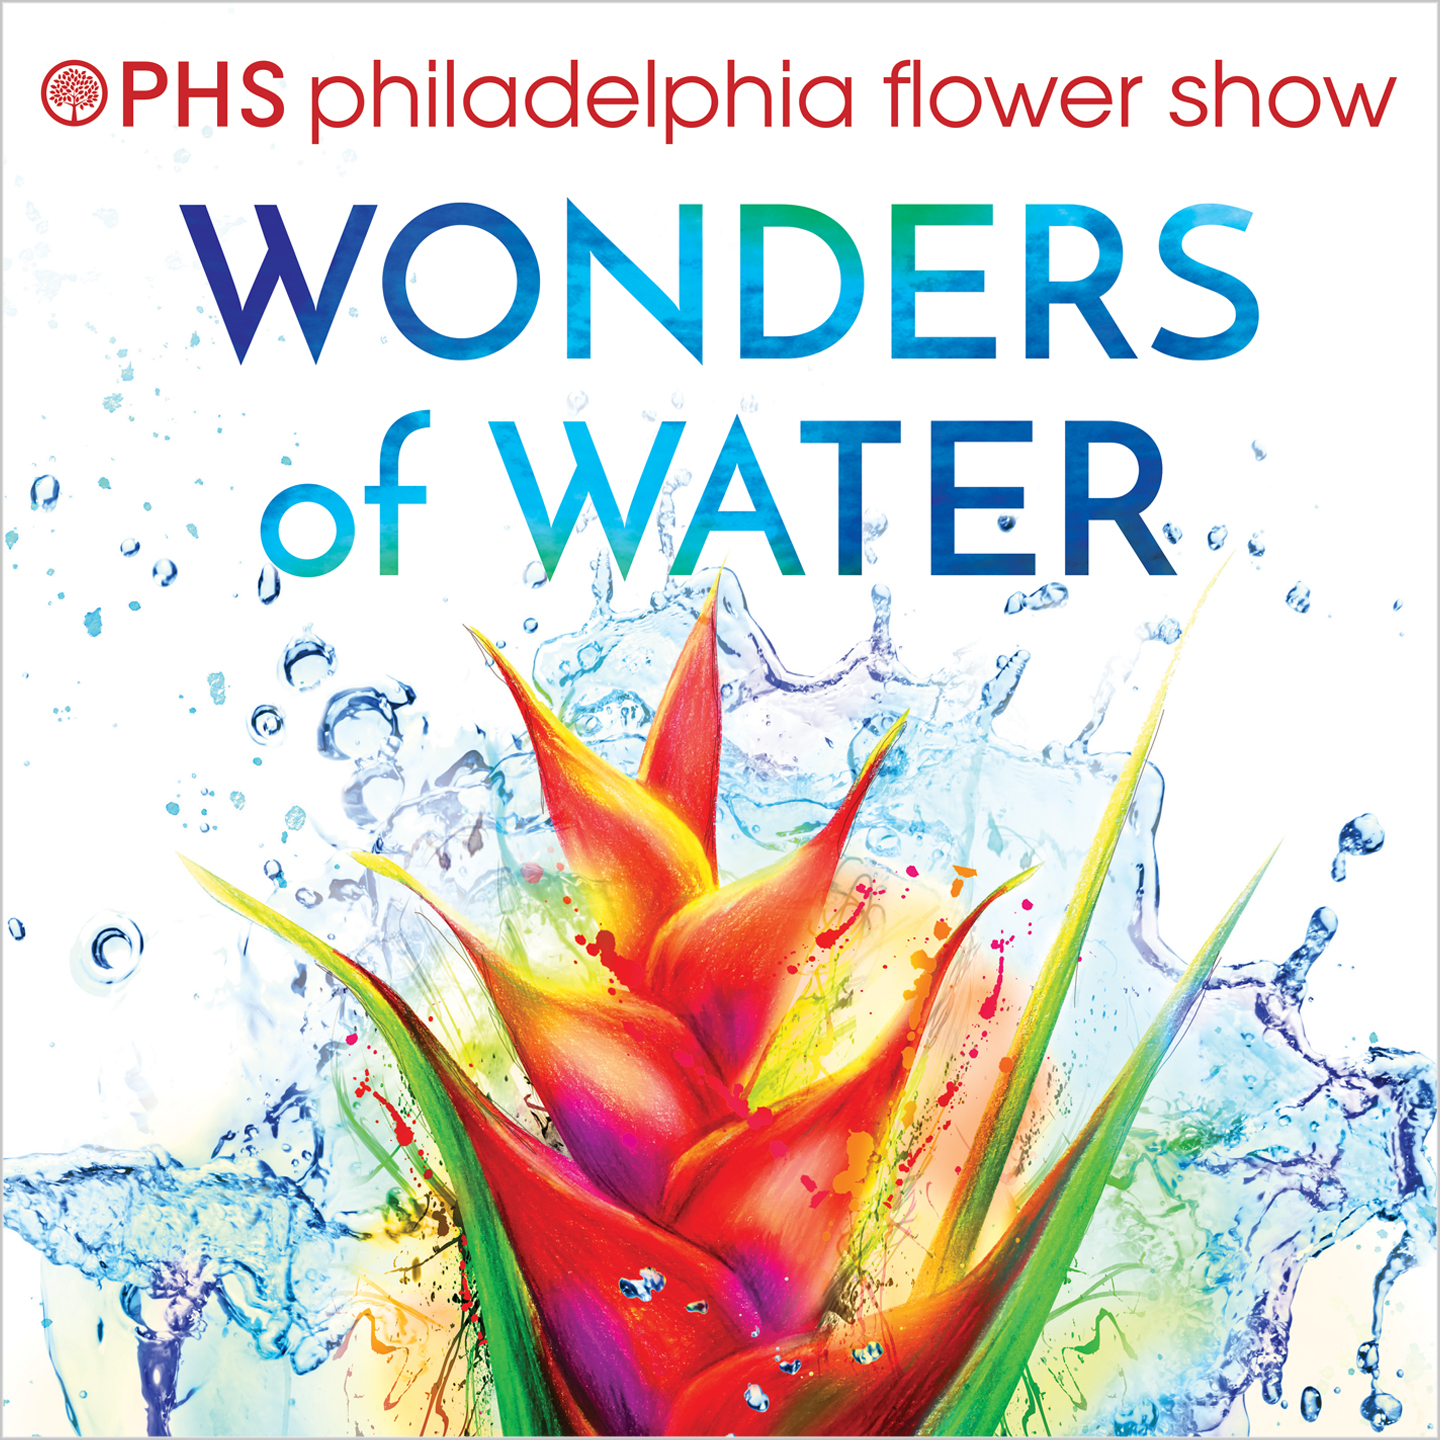 Merchandise designs for the 2018 PHS Philadelphia Flower Show, such as seed packets, t-shirts, keychains, coasters, mugs, tote bags, tumblers, and more.